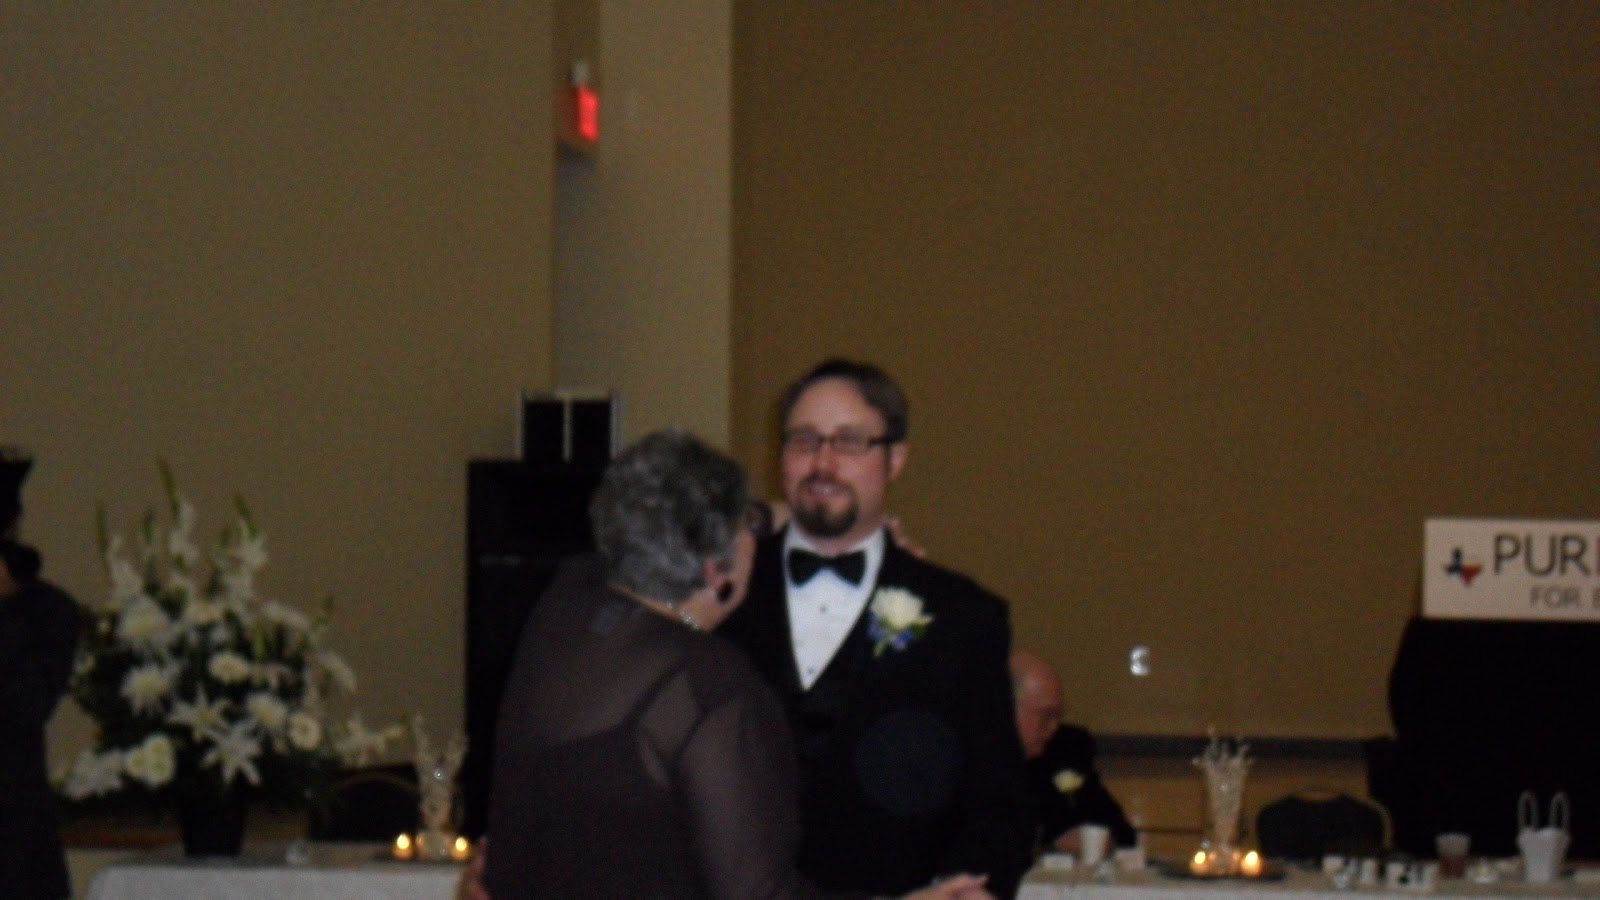 Our Wedding, photos by Rachel Perez - SAM_0193.JPG